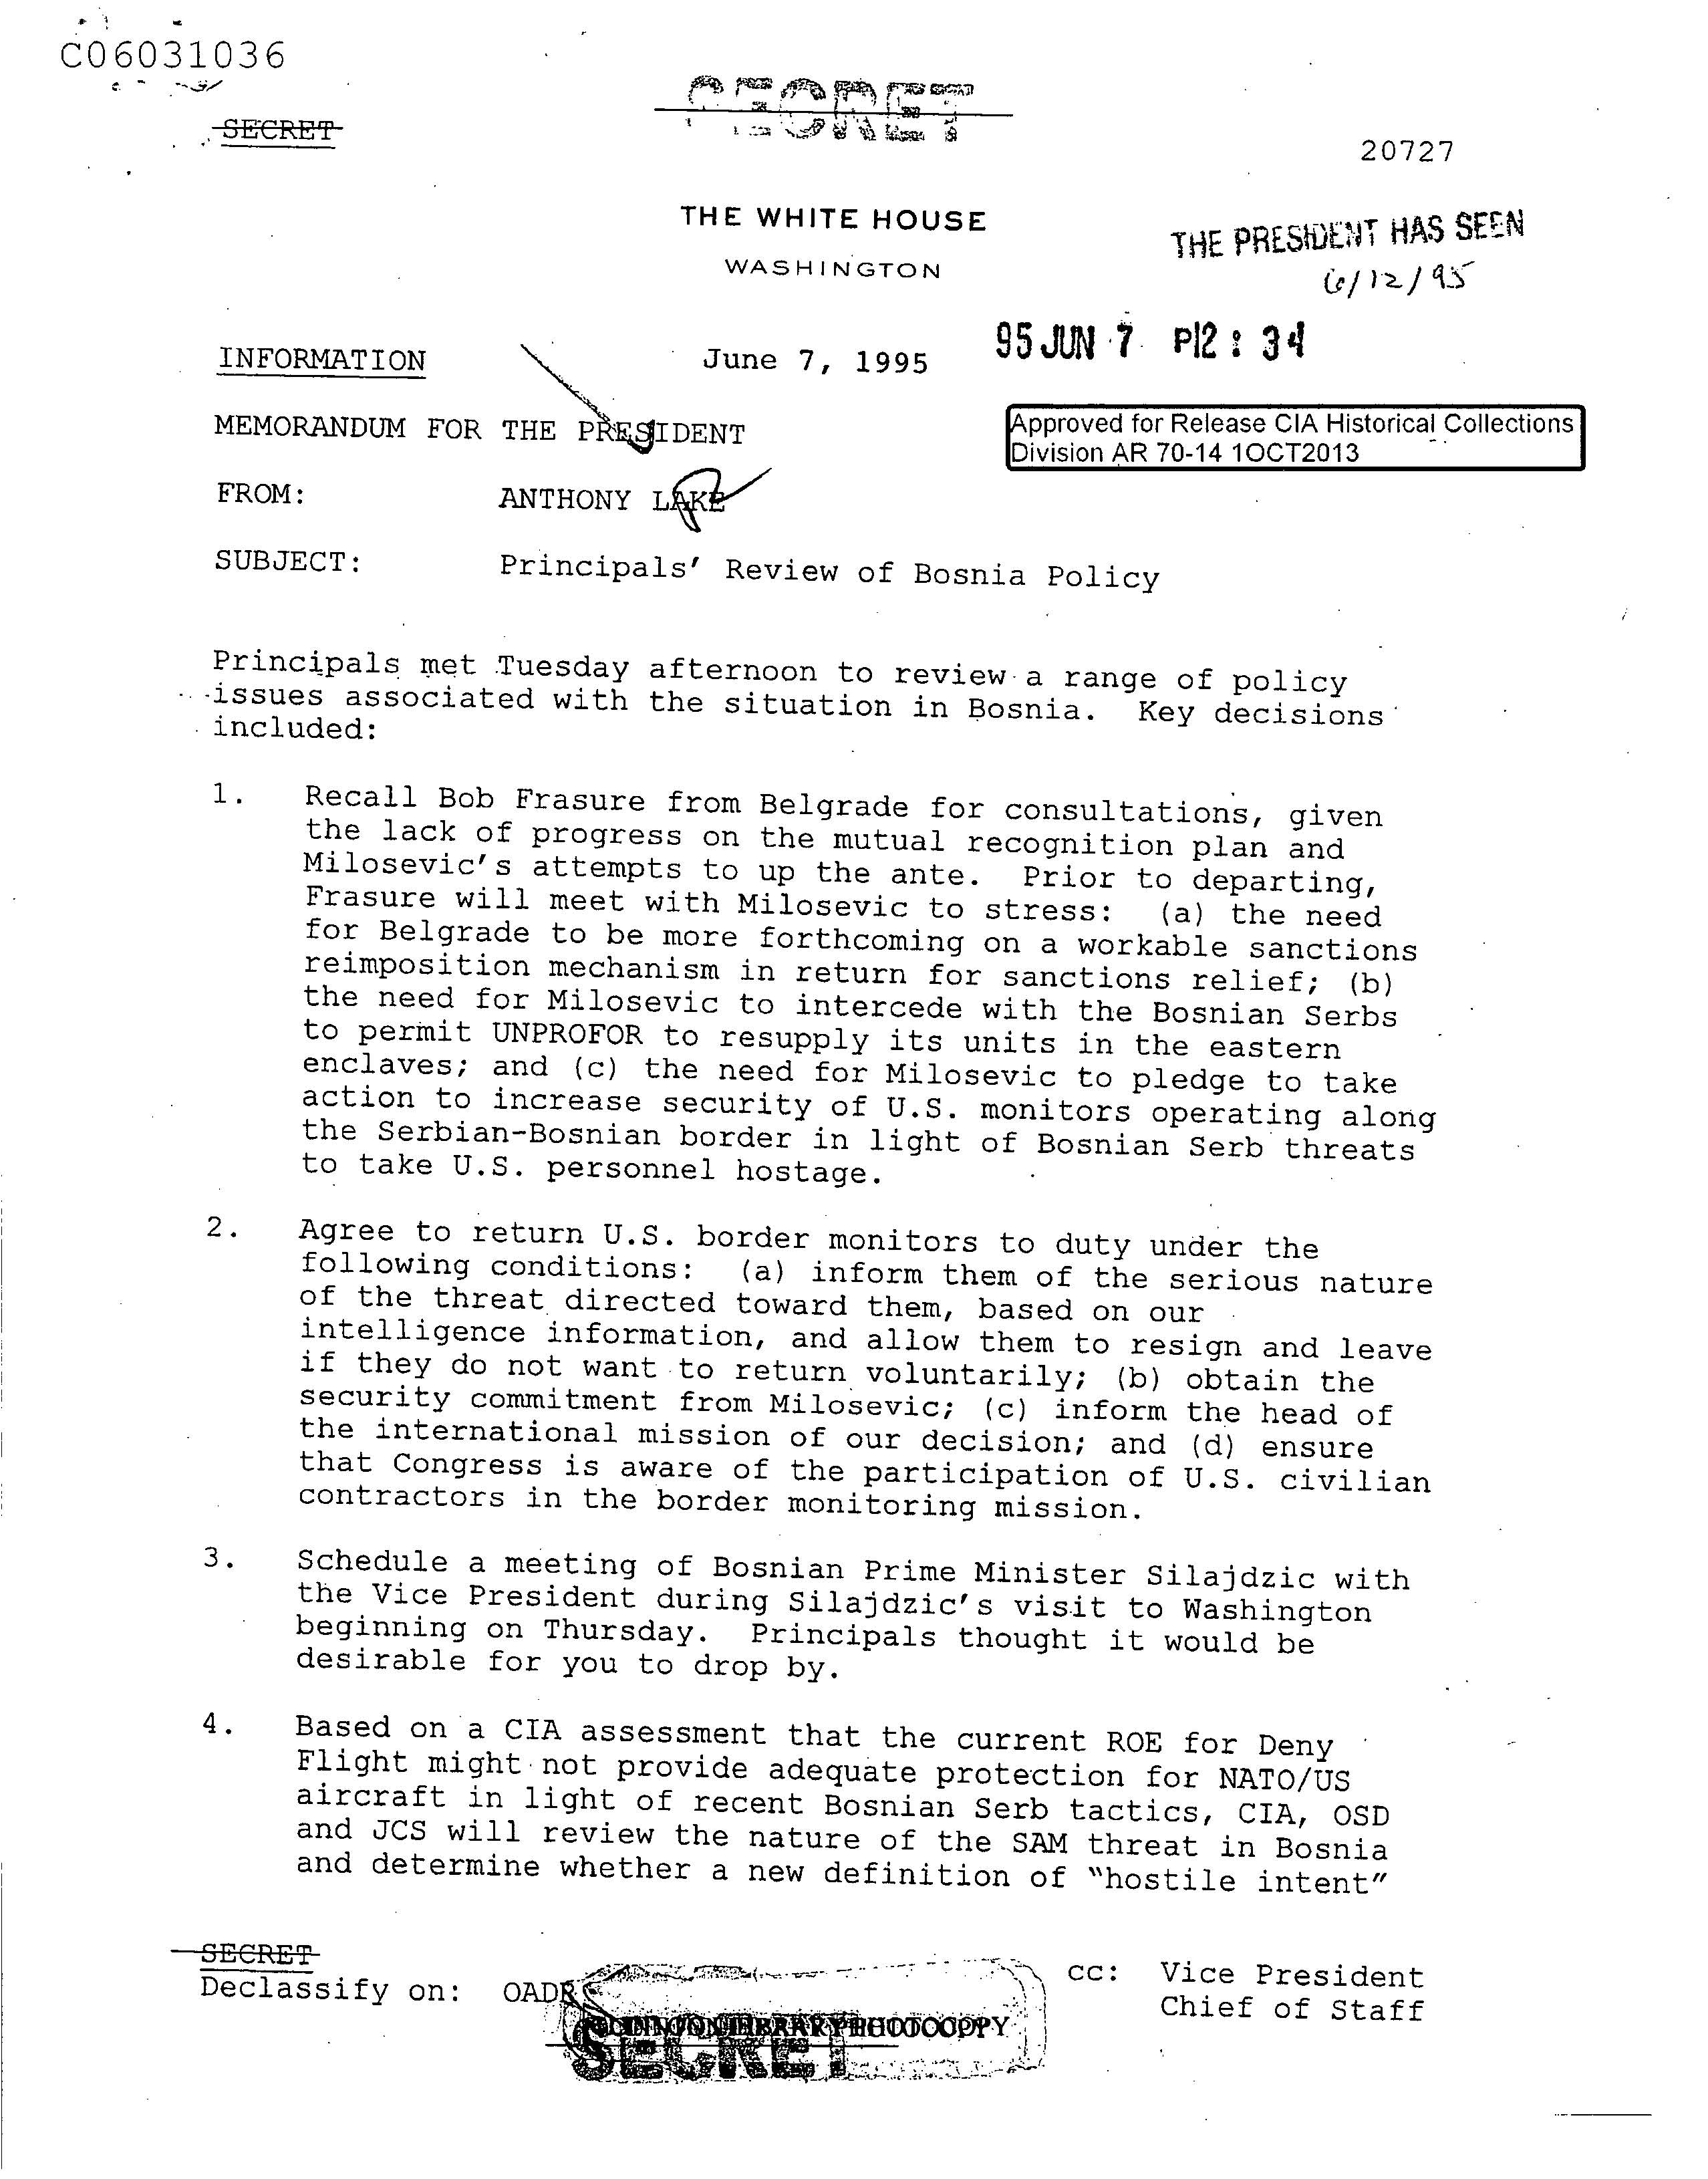 Anthony Lake to President Clinton re: Principals' Review of Bosnia